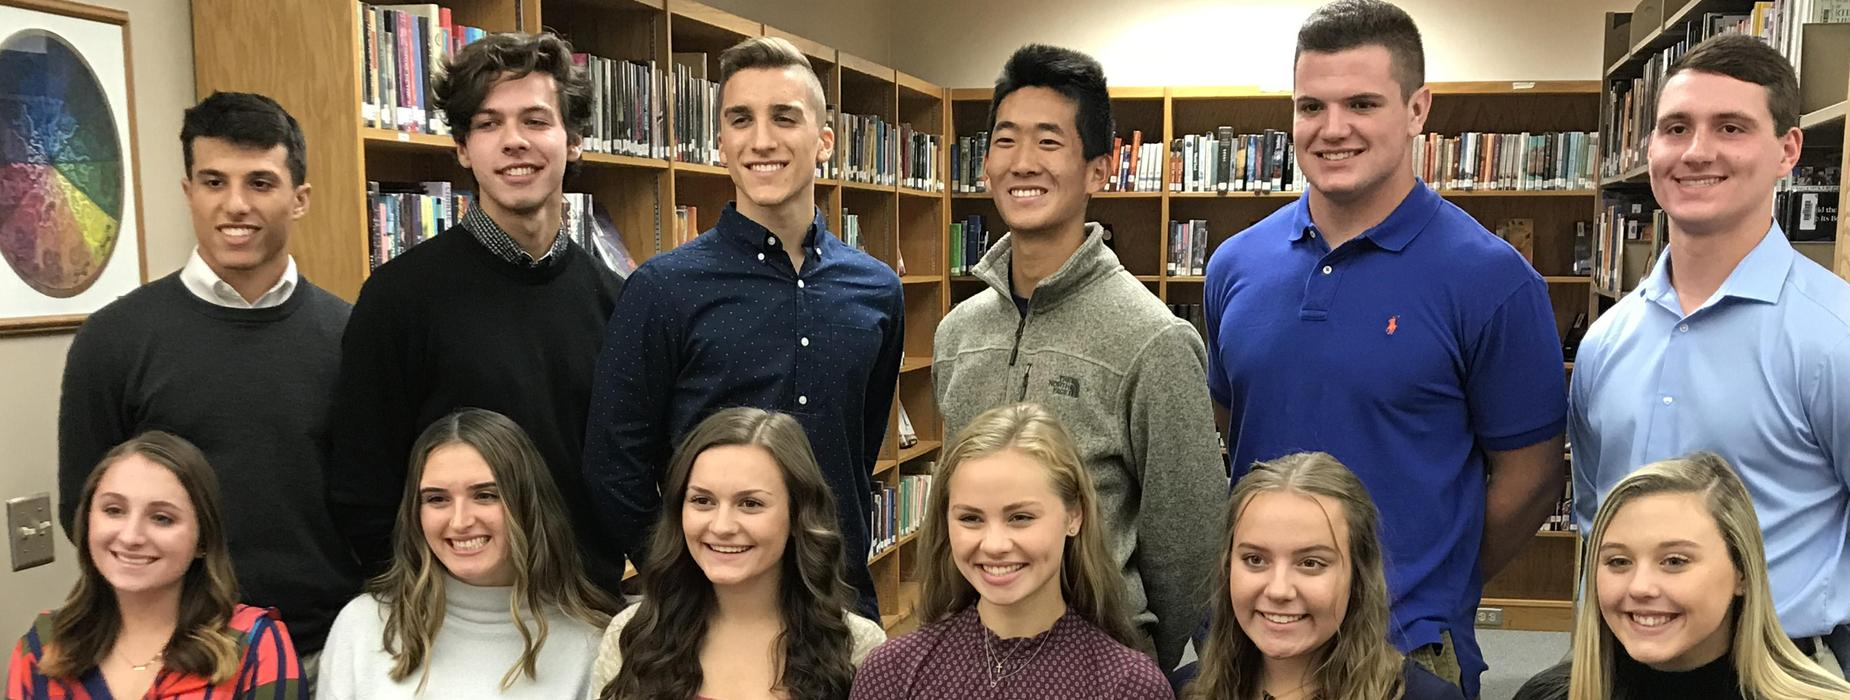 2019 FRSH Homecoming Court